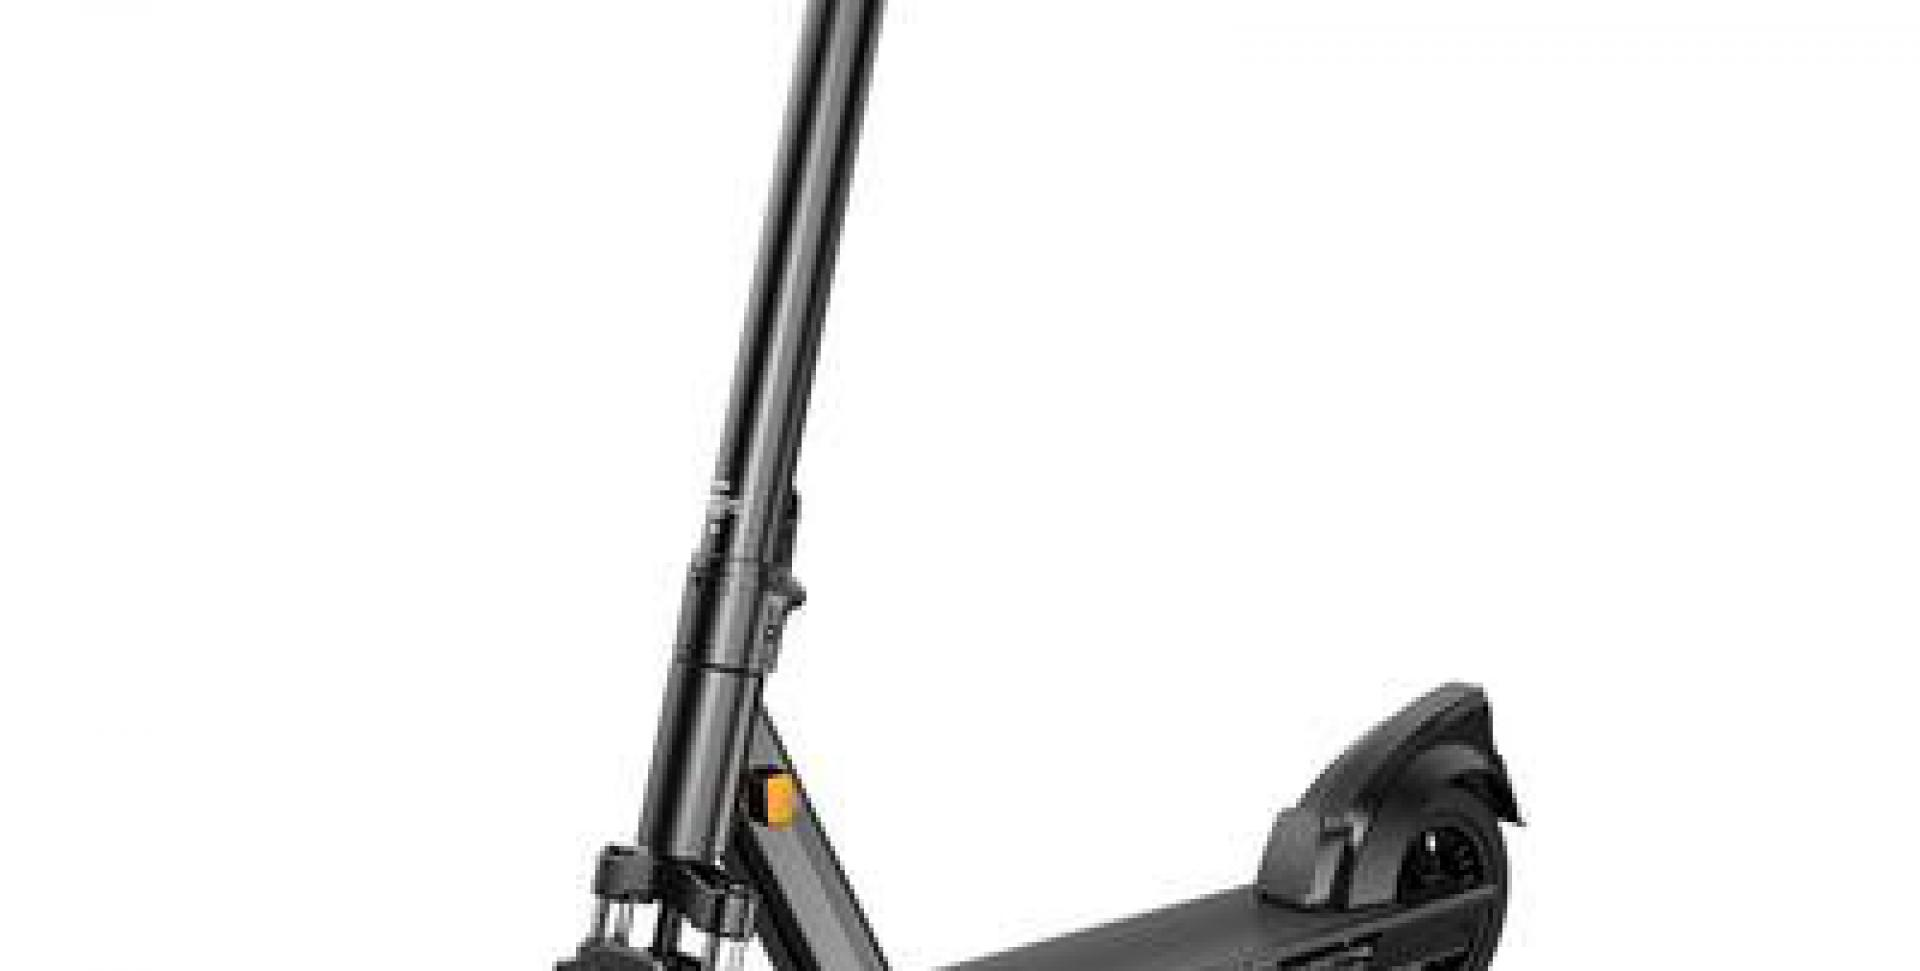 Okai-electric-scooter-_-electric-bike-manufacturer-es200-side-view-square_400x.jpg